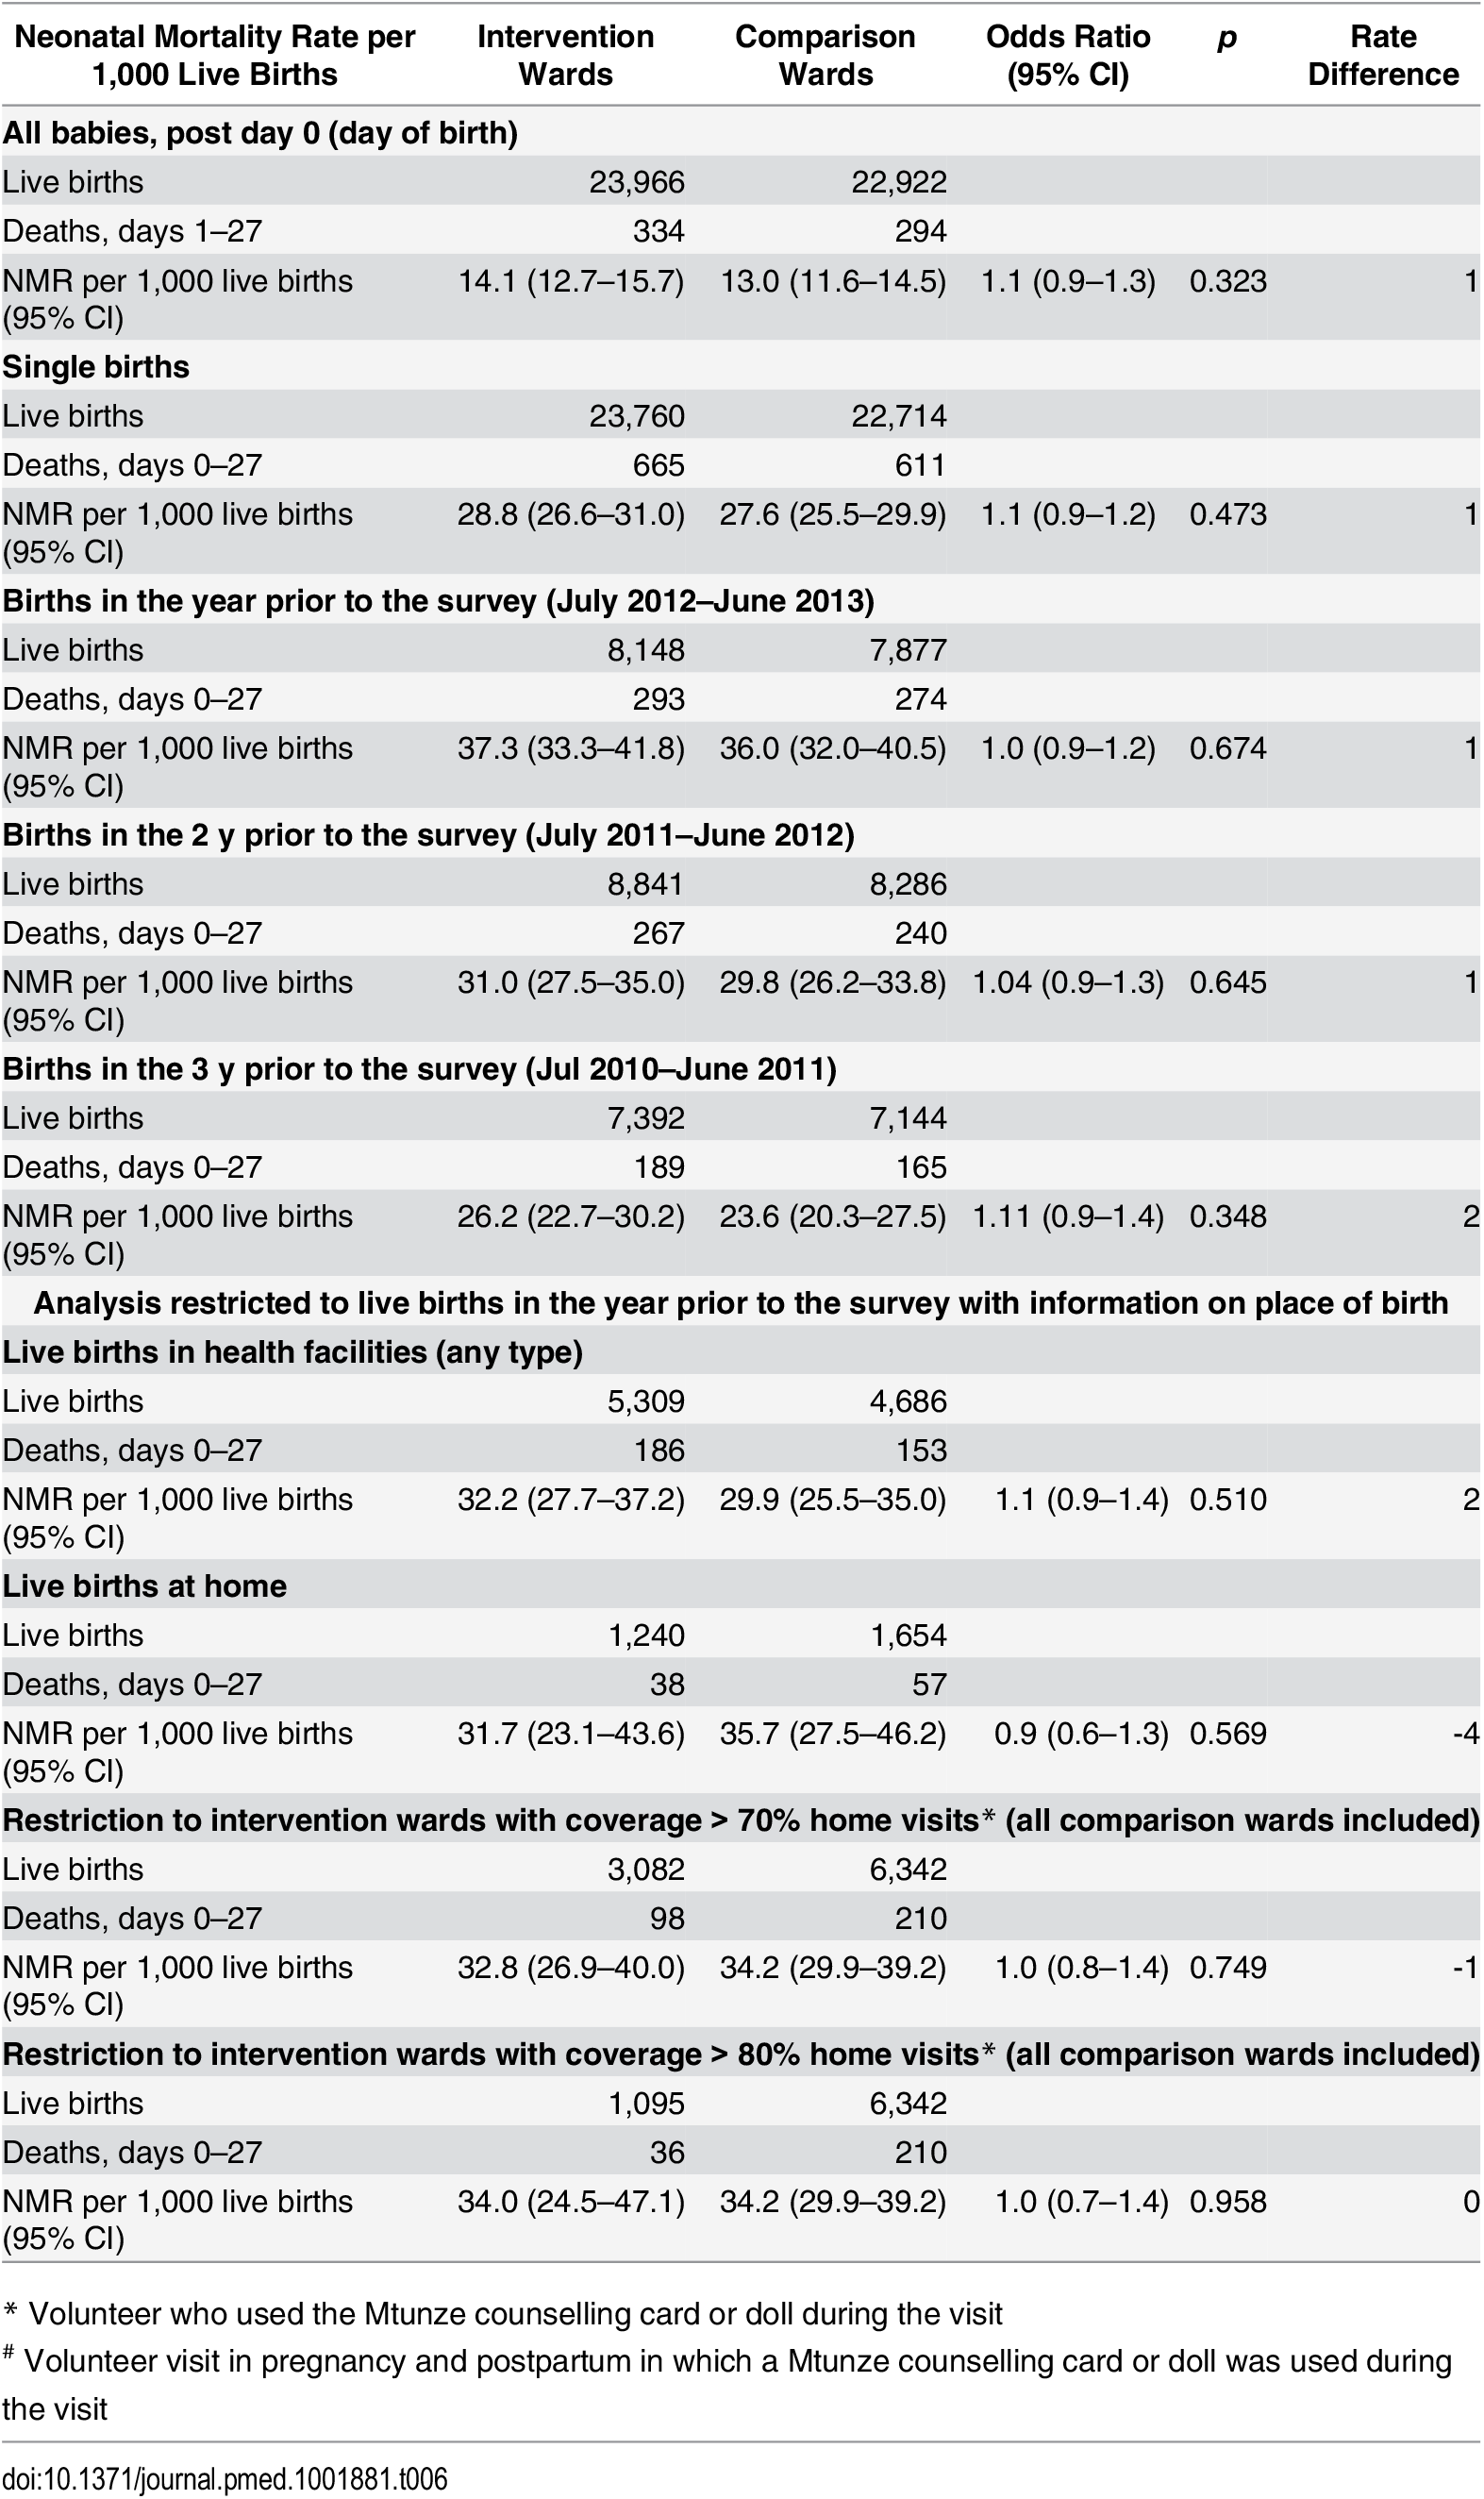 Secondary analysis, neonatal mortality in subgroups by intervention status, 2013 survey.